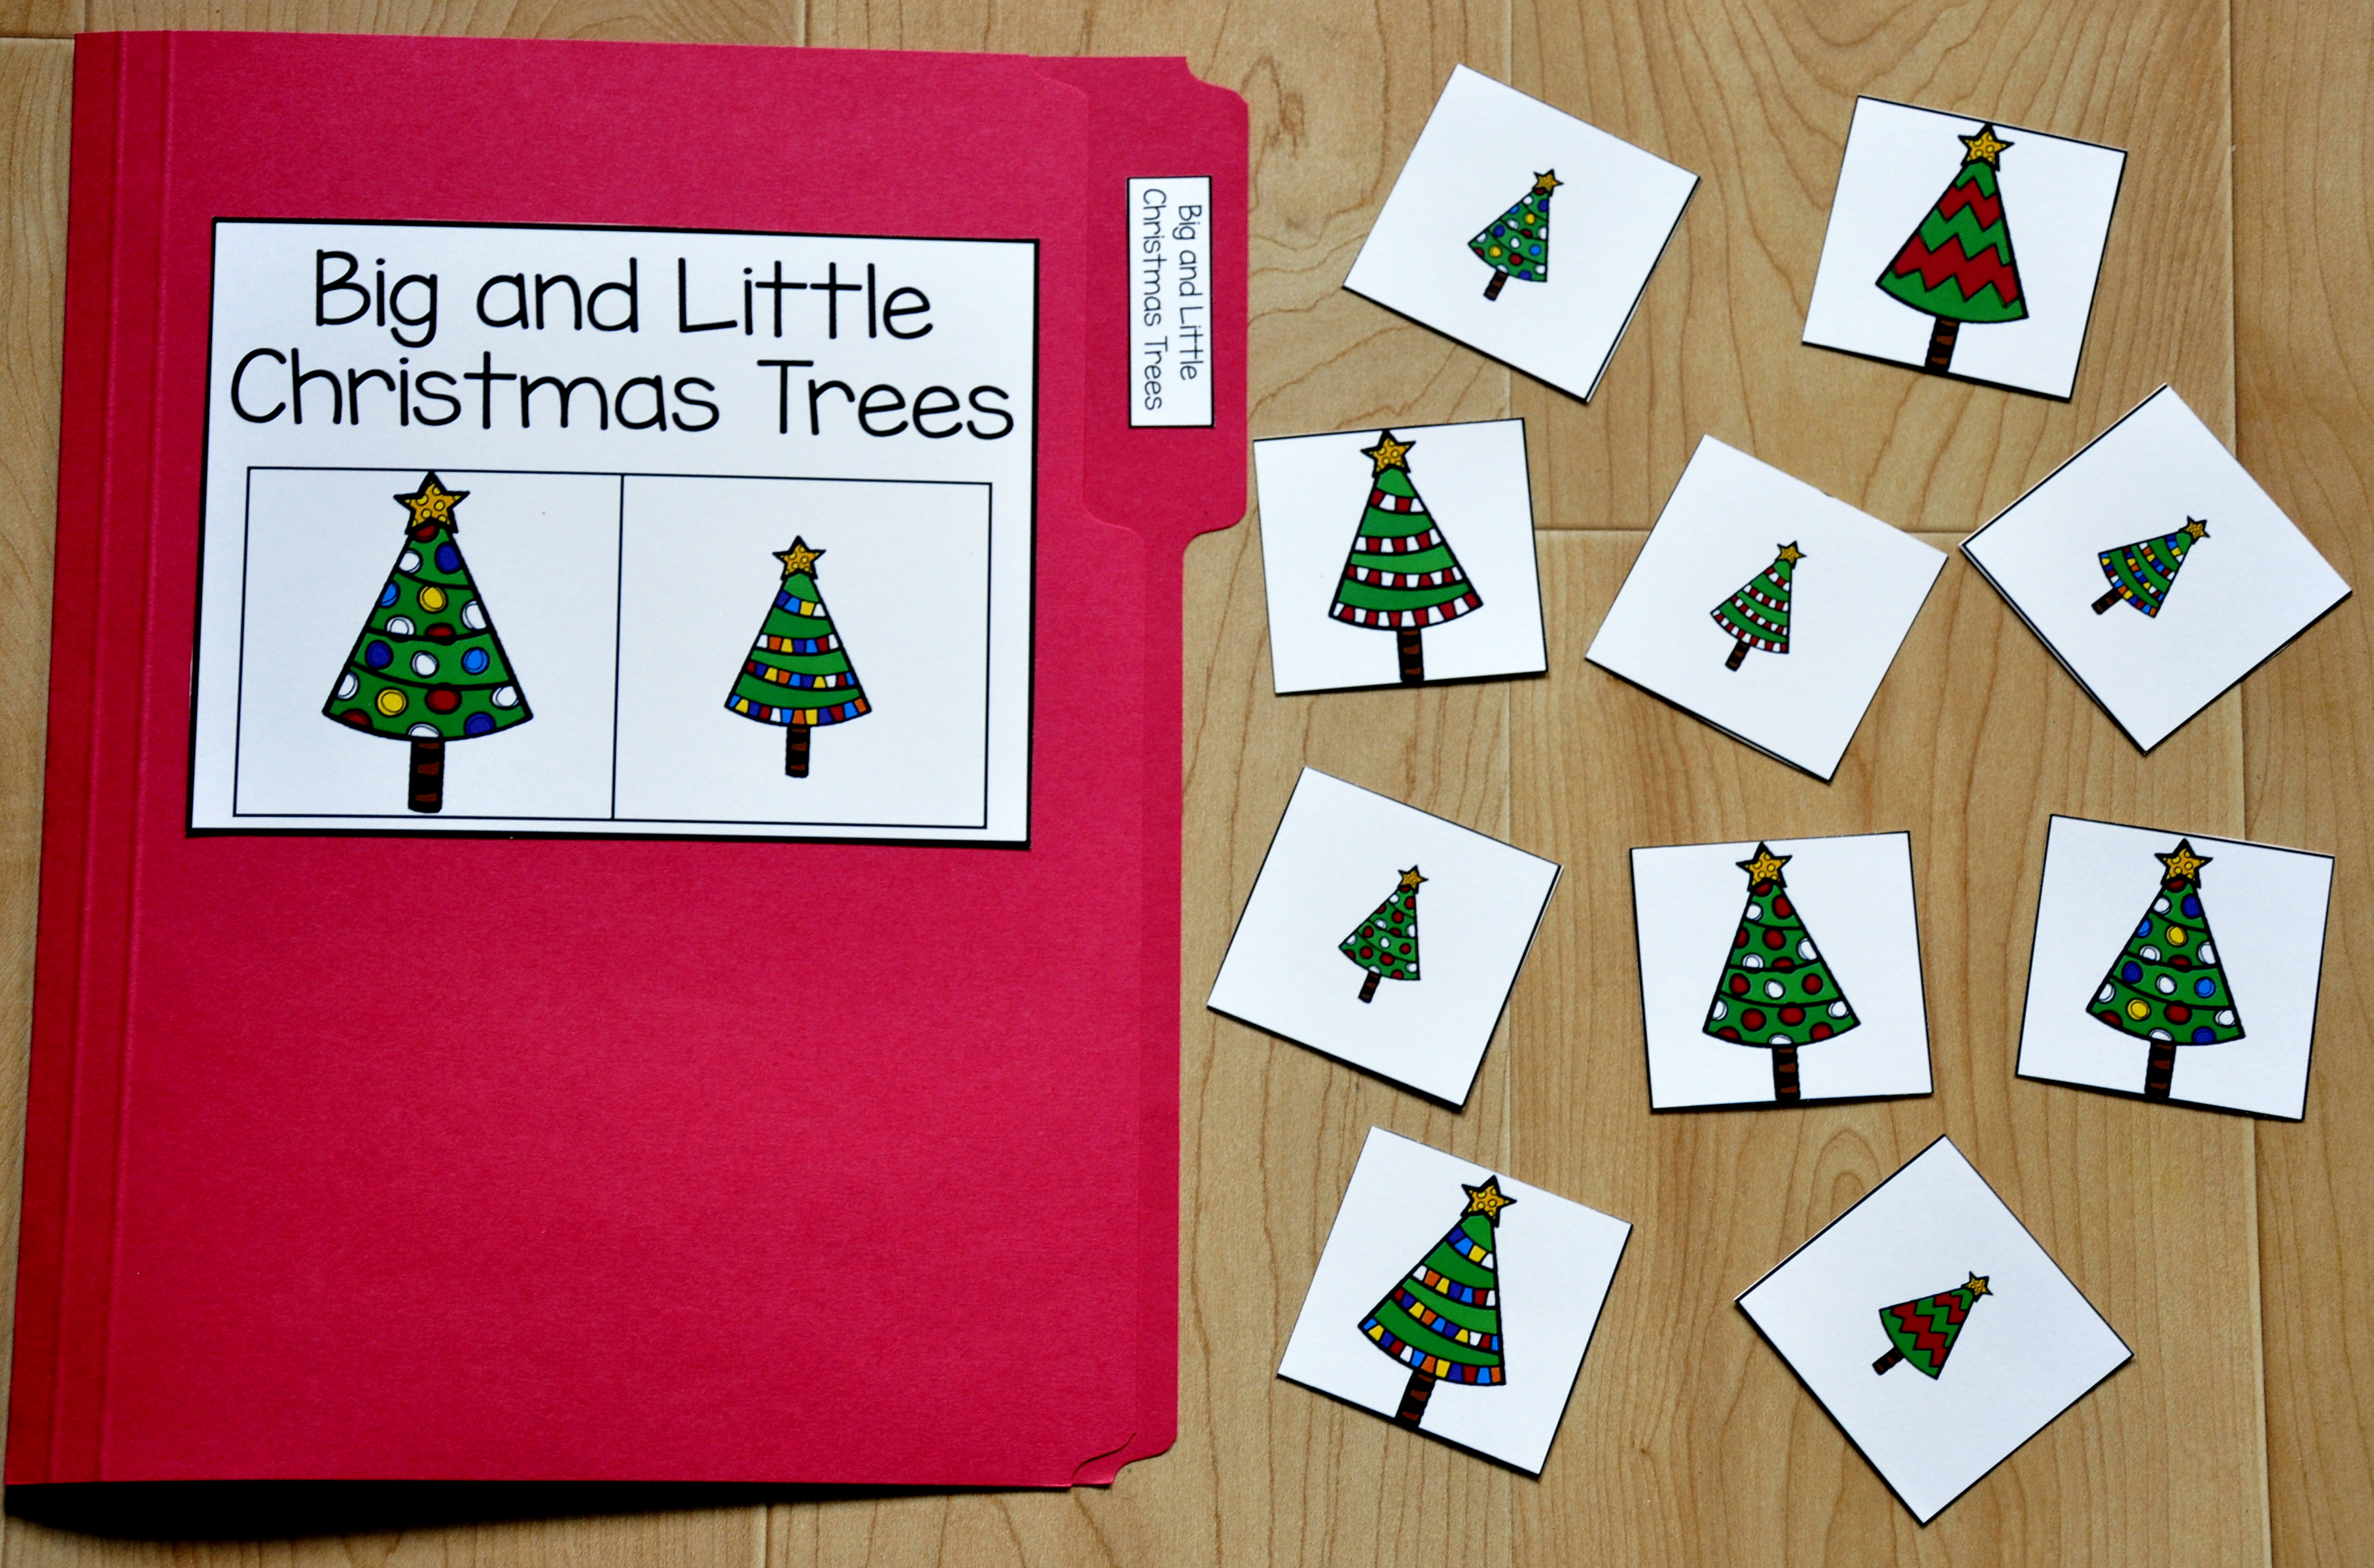 Big and Little Christmas Trees Sort File Folder Game